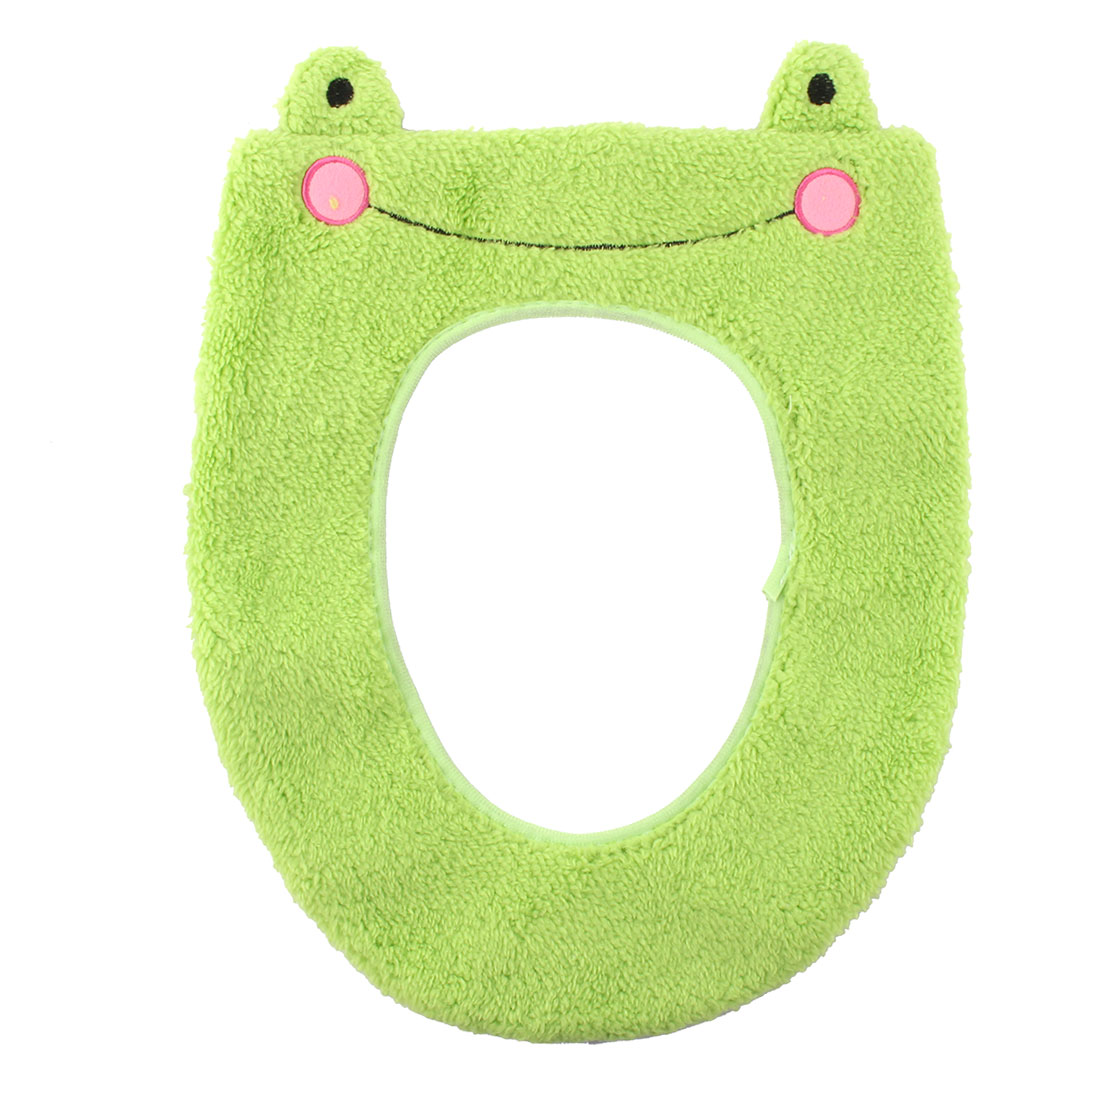 Unique Bargains Toilet Plush Frog Pattern Stool Washable Warmer Seat Cover Green